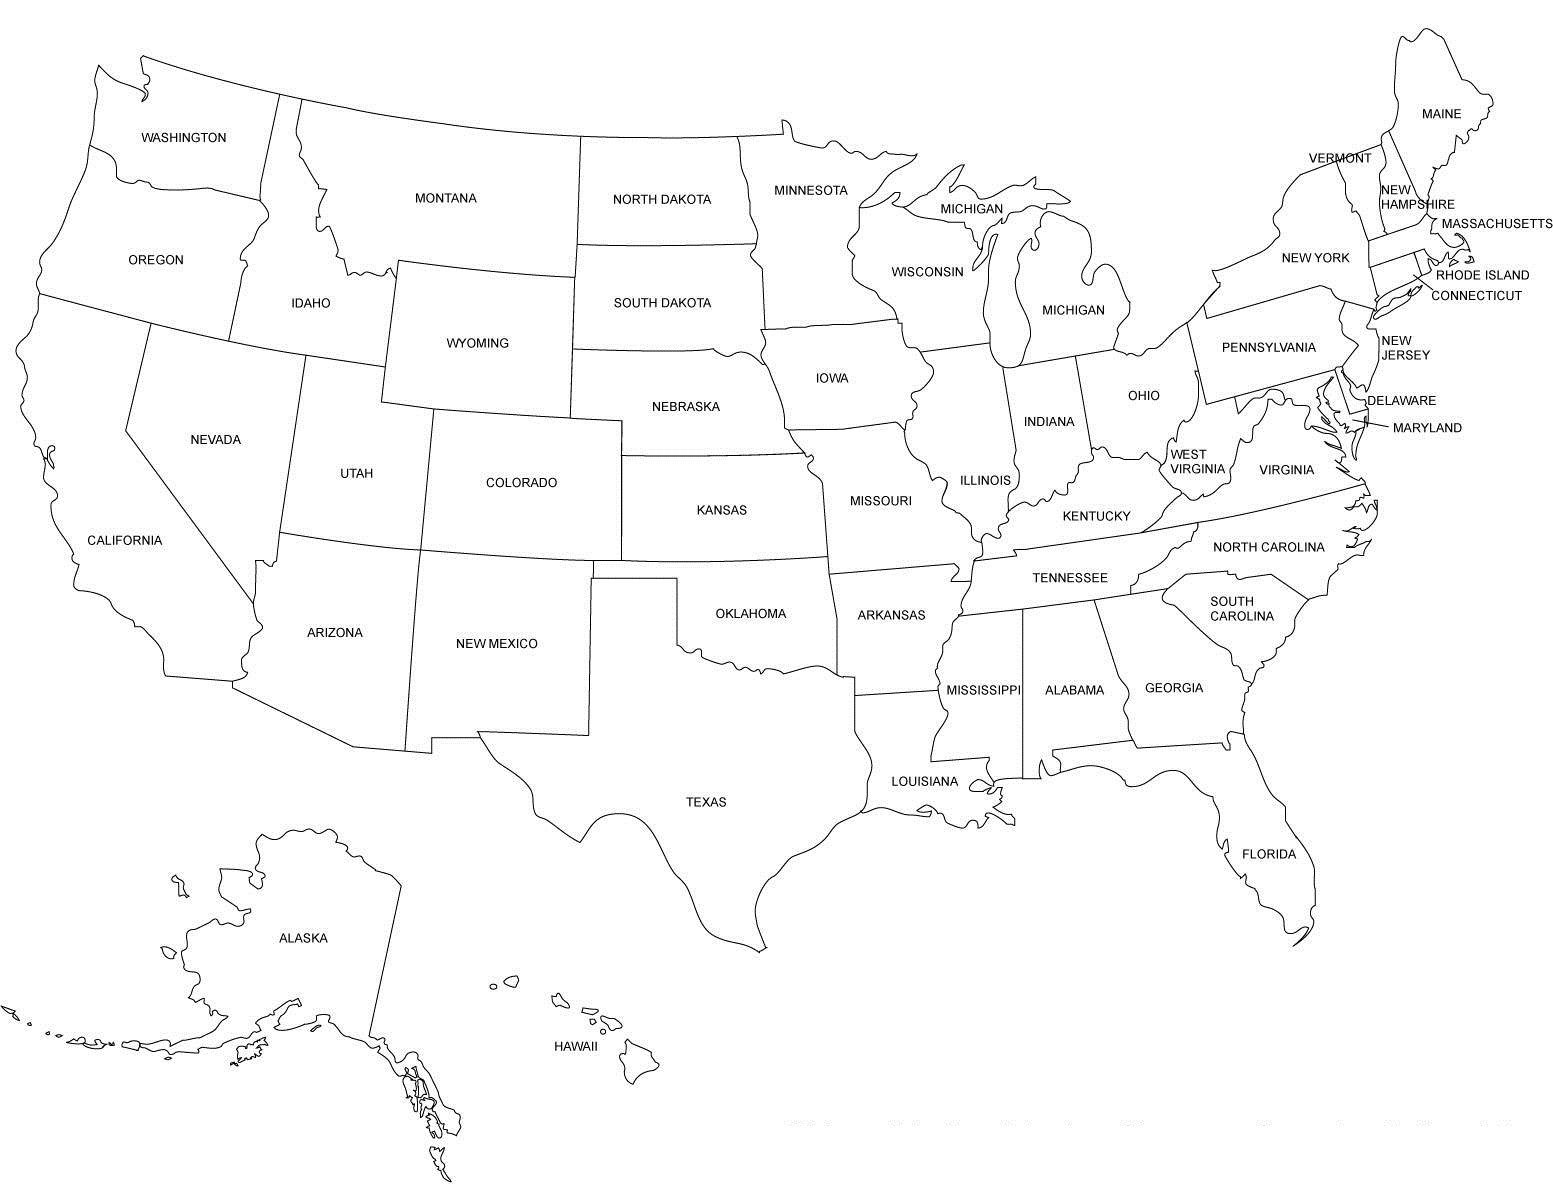 Priceless image intended for printable us map blank